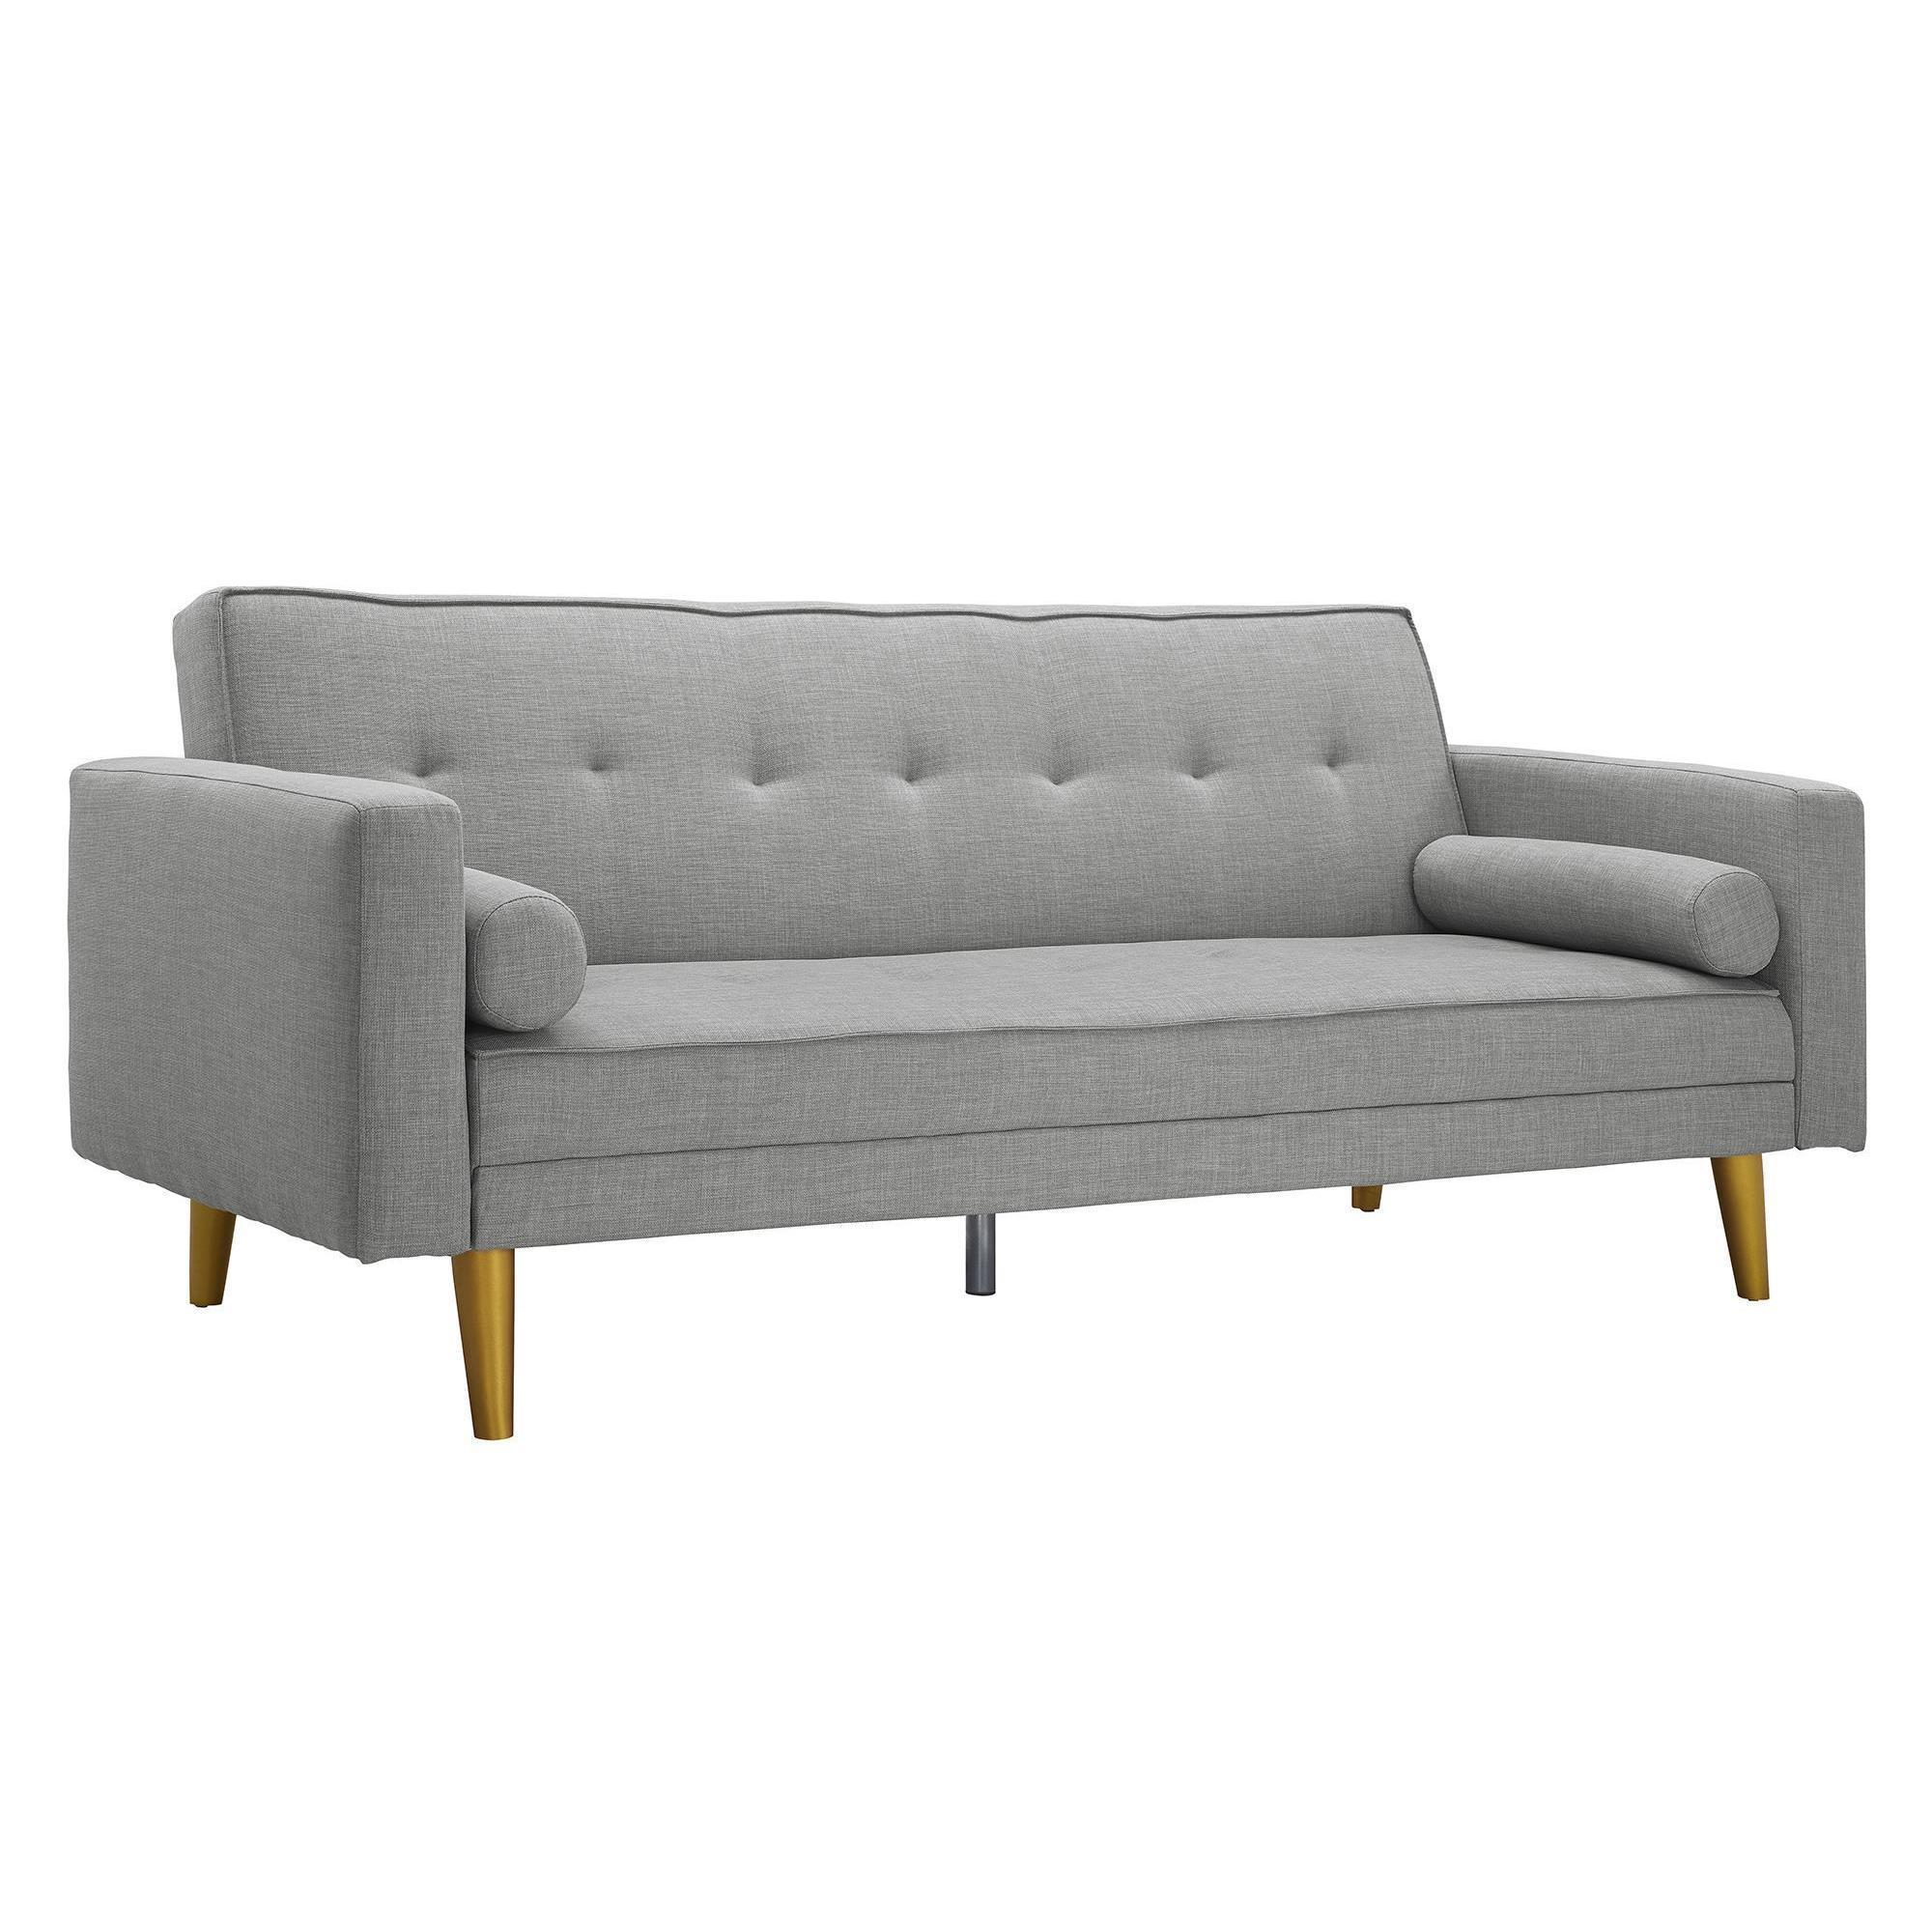 futon by kho liang sofa ie artifort for loveseat